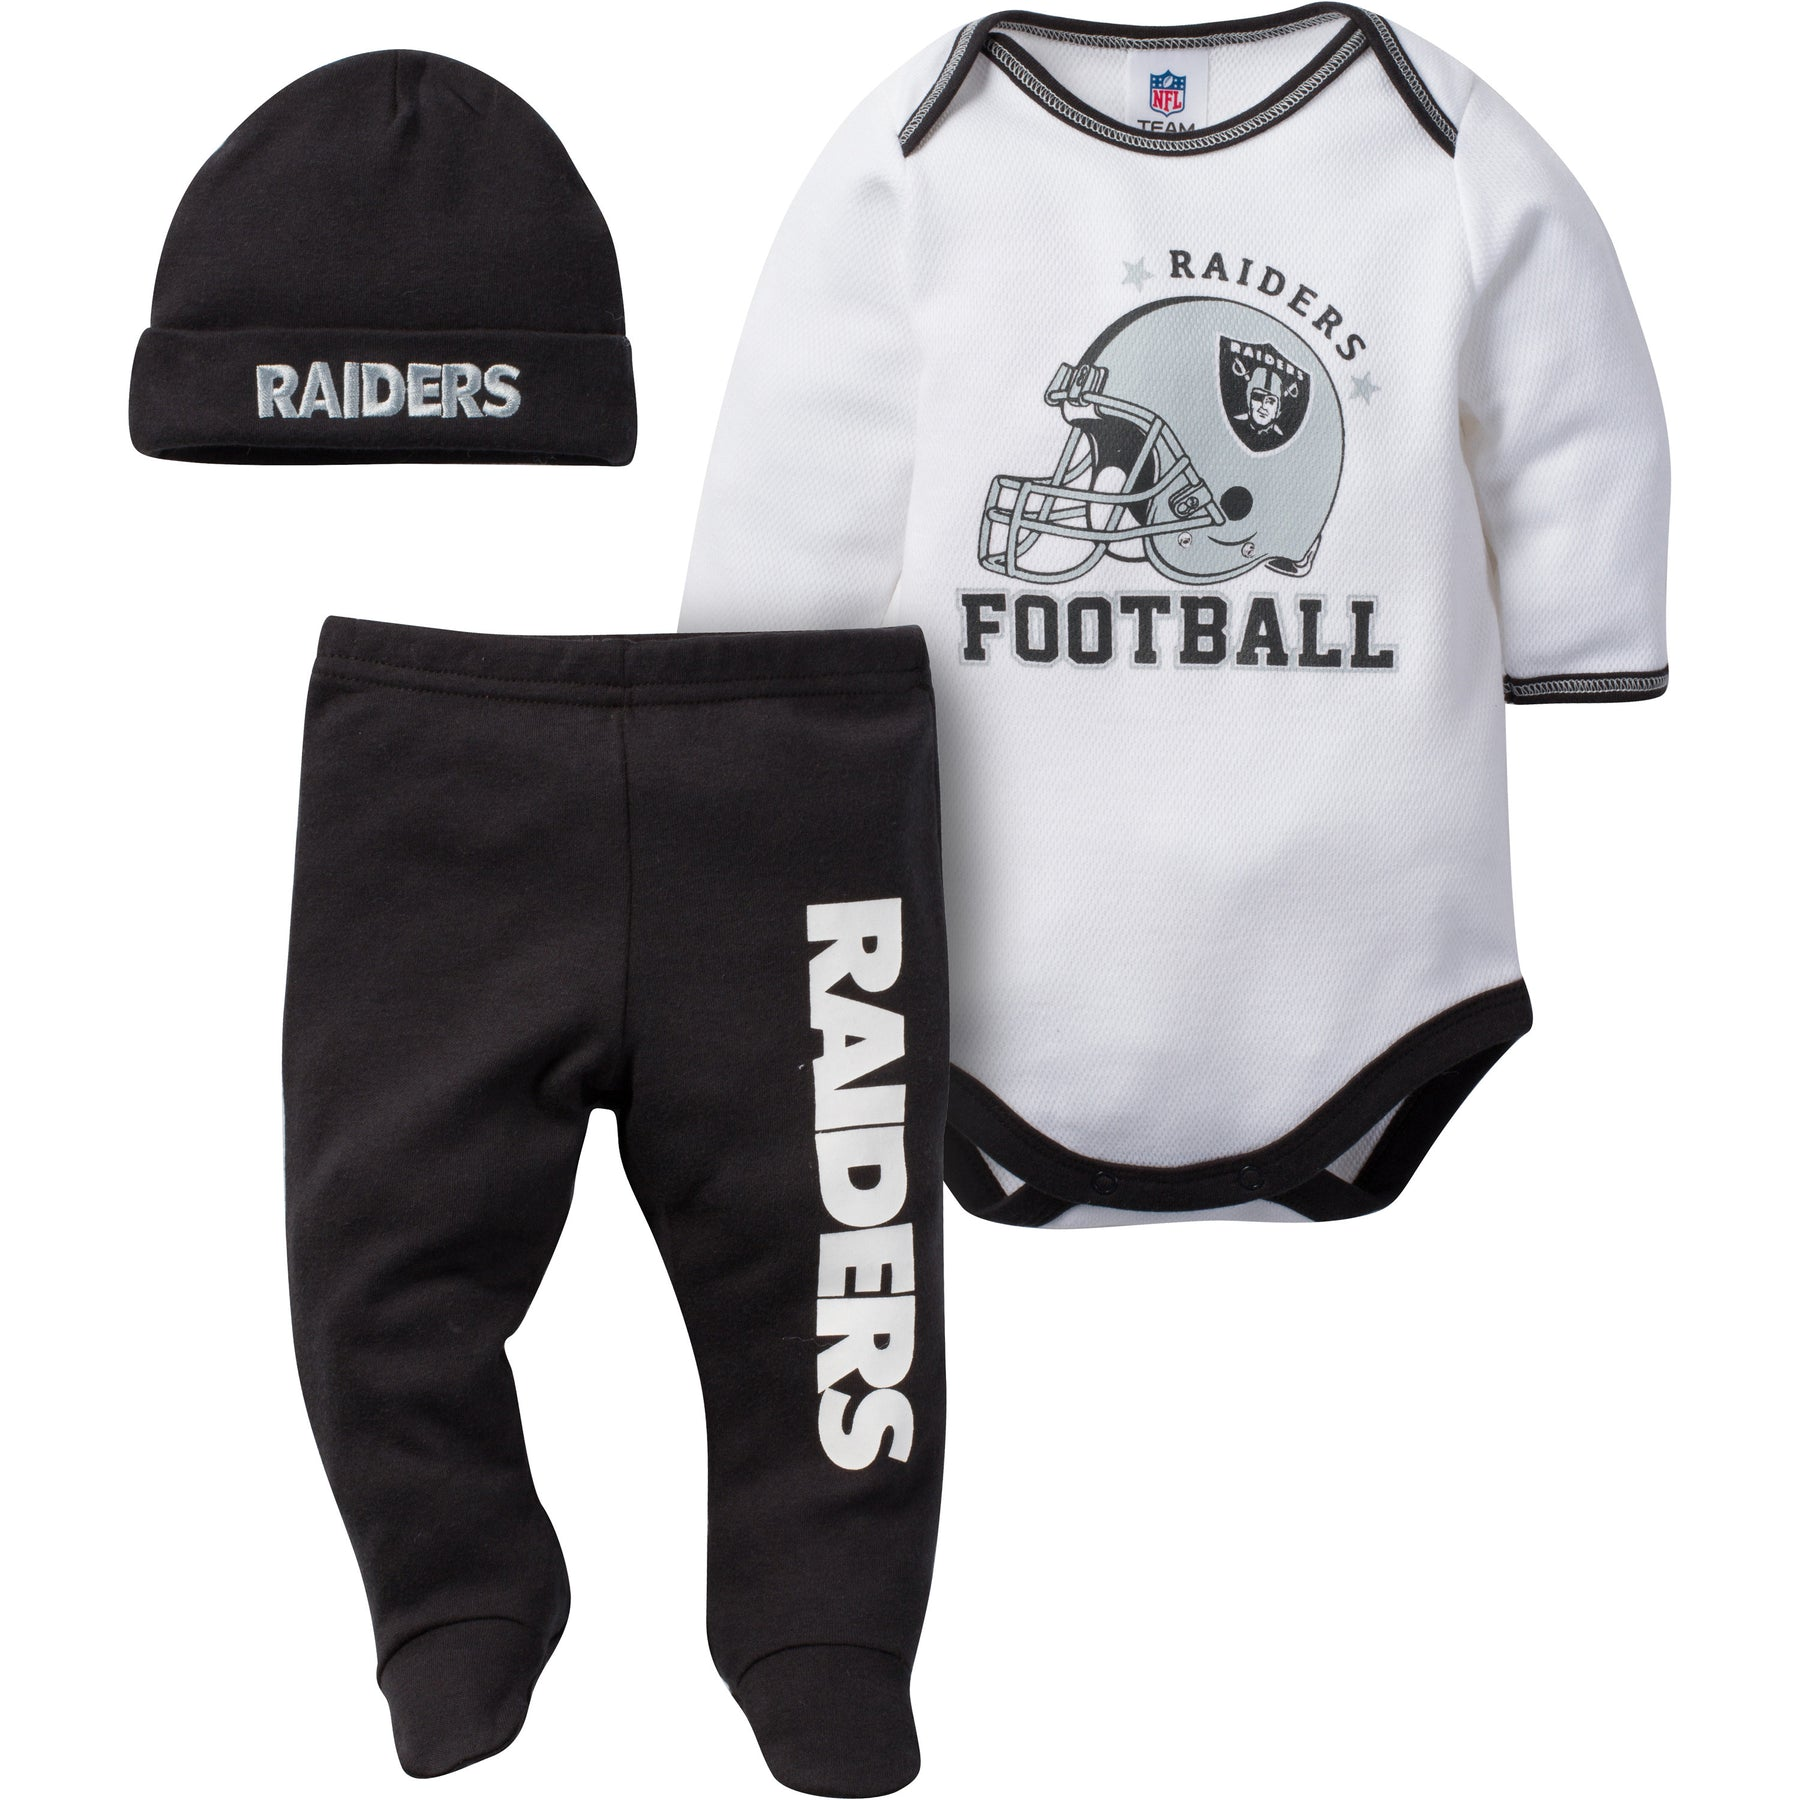 Raiders Baby 3 Piece Outfit – babyfans c41197193